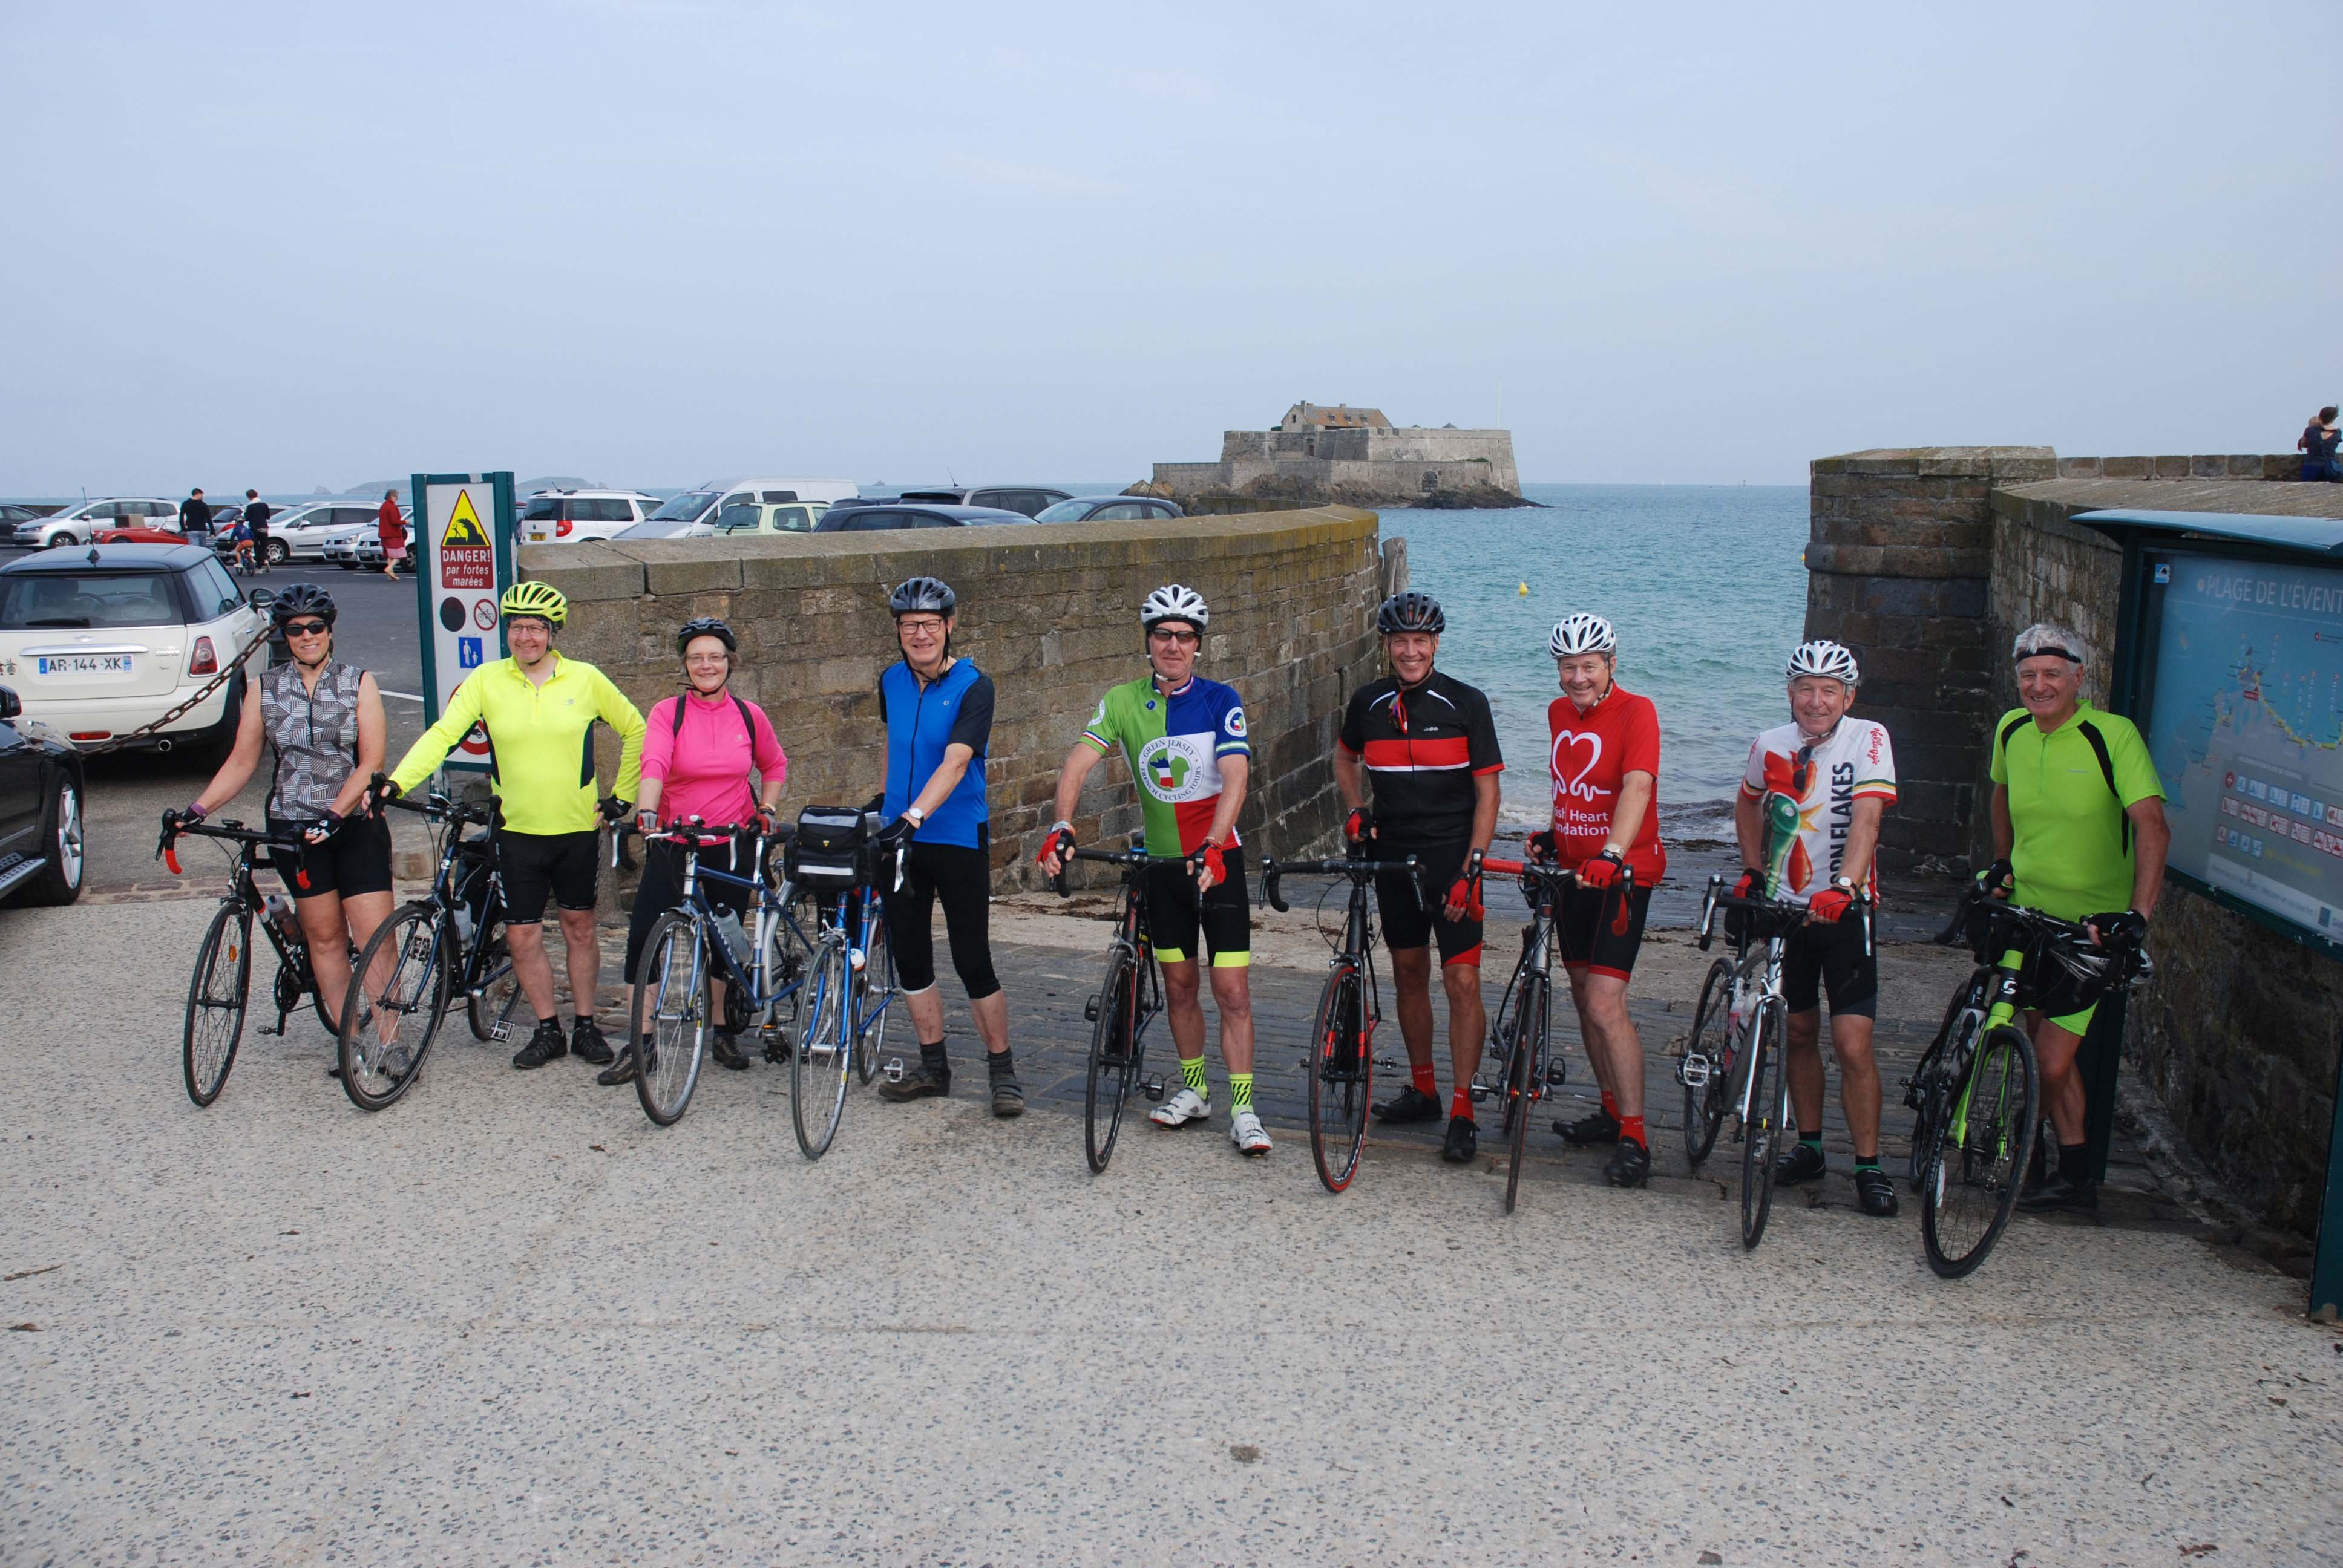 Setting off from St Malo on our cycling tour of Brittany